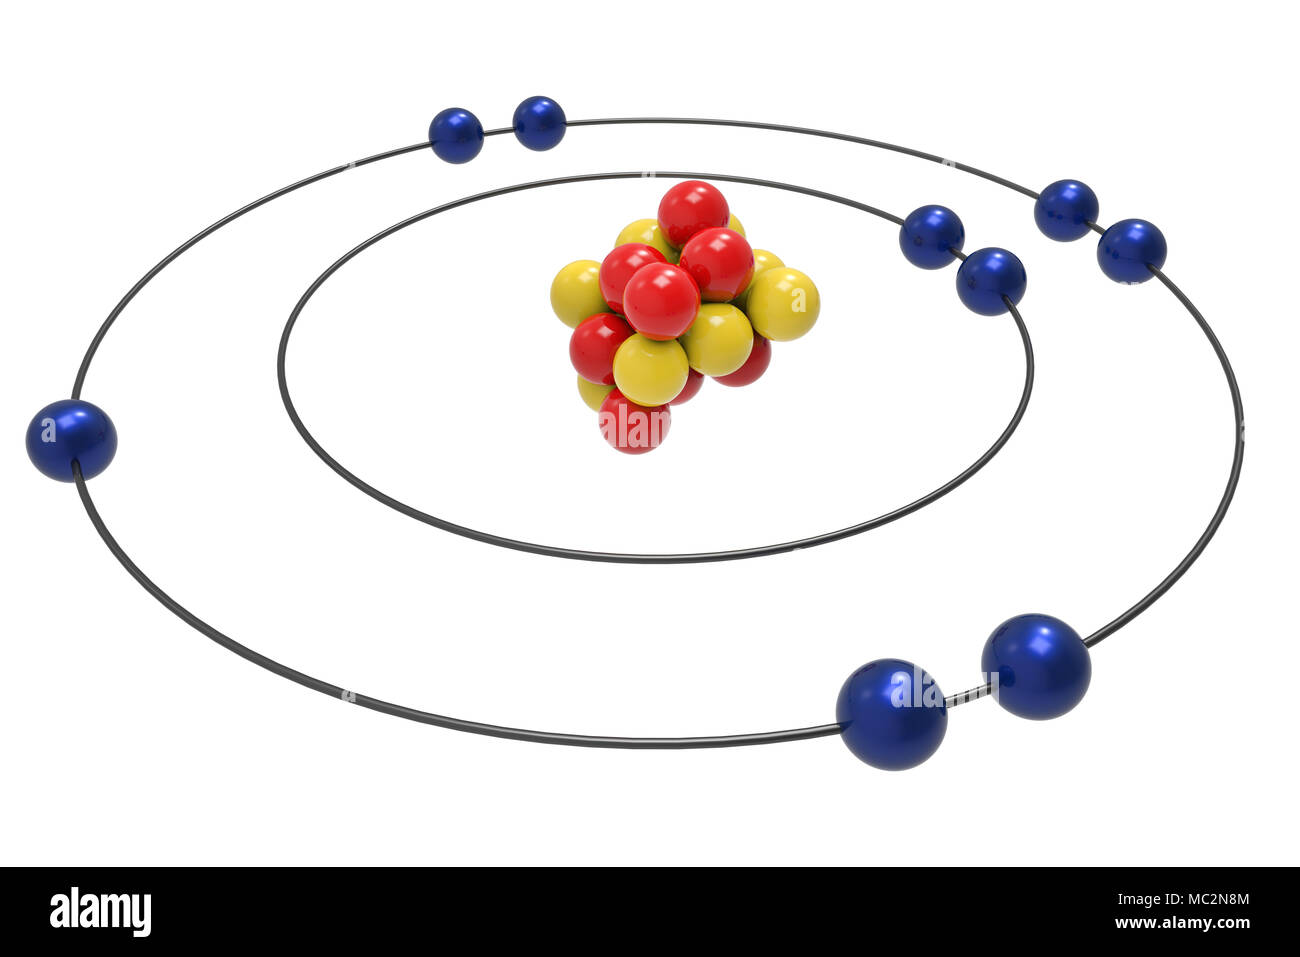 Bohr model of Fluorine Atom with proton, neutron and electron. Science and chemical concept 3d illustration - Stock Image